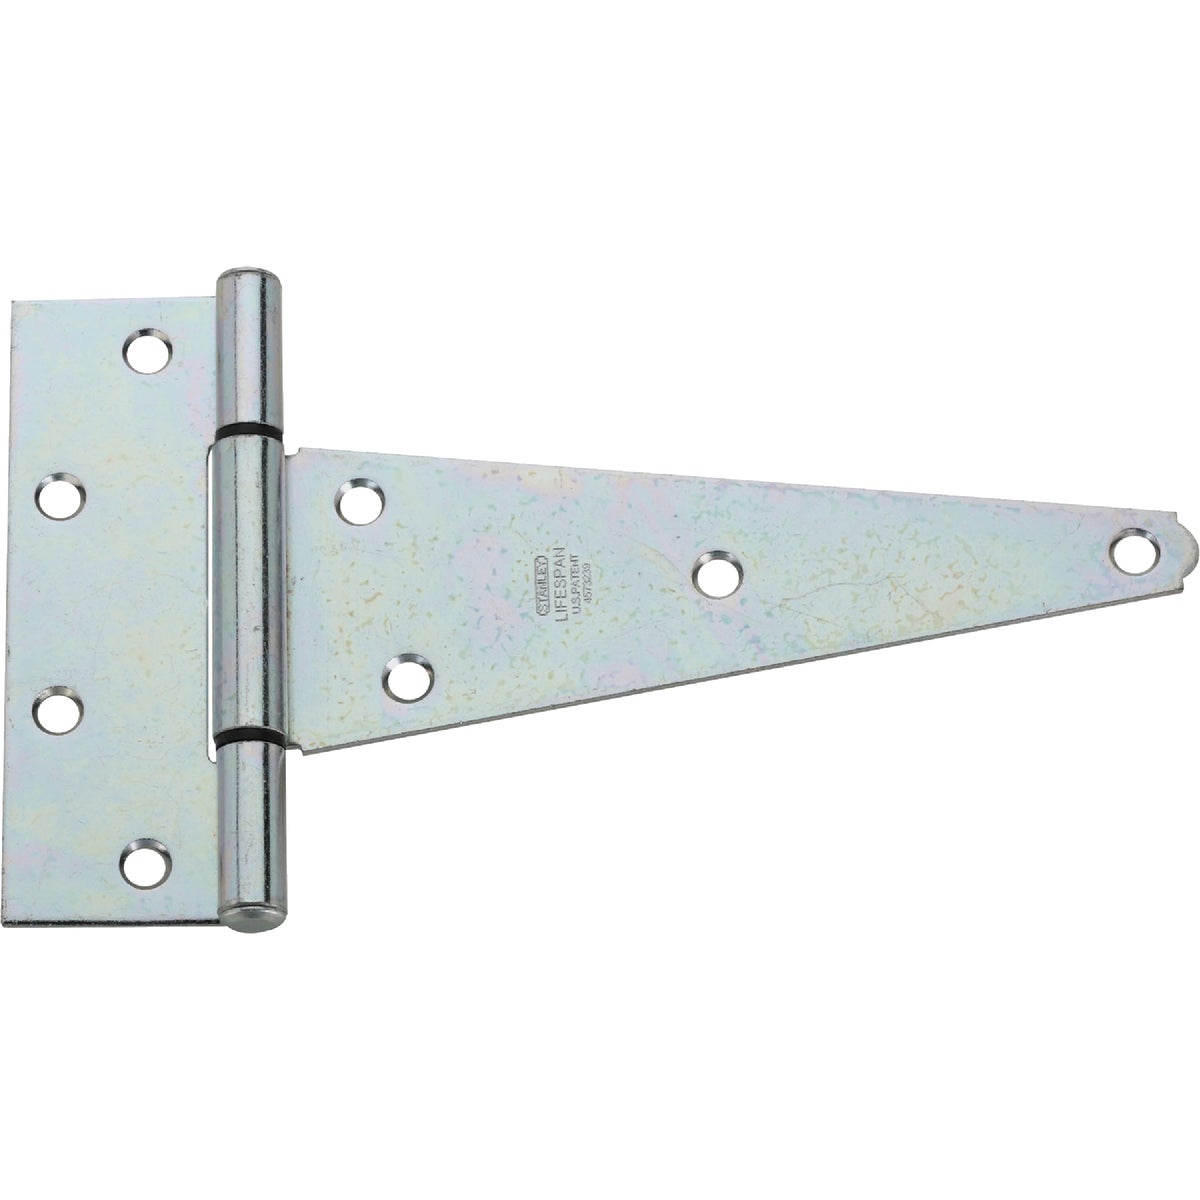 "8"" EXTRA HEAVY TEE HINGE - N129239 by National Mfg Co"